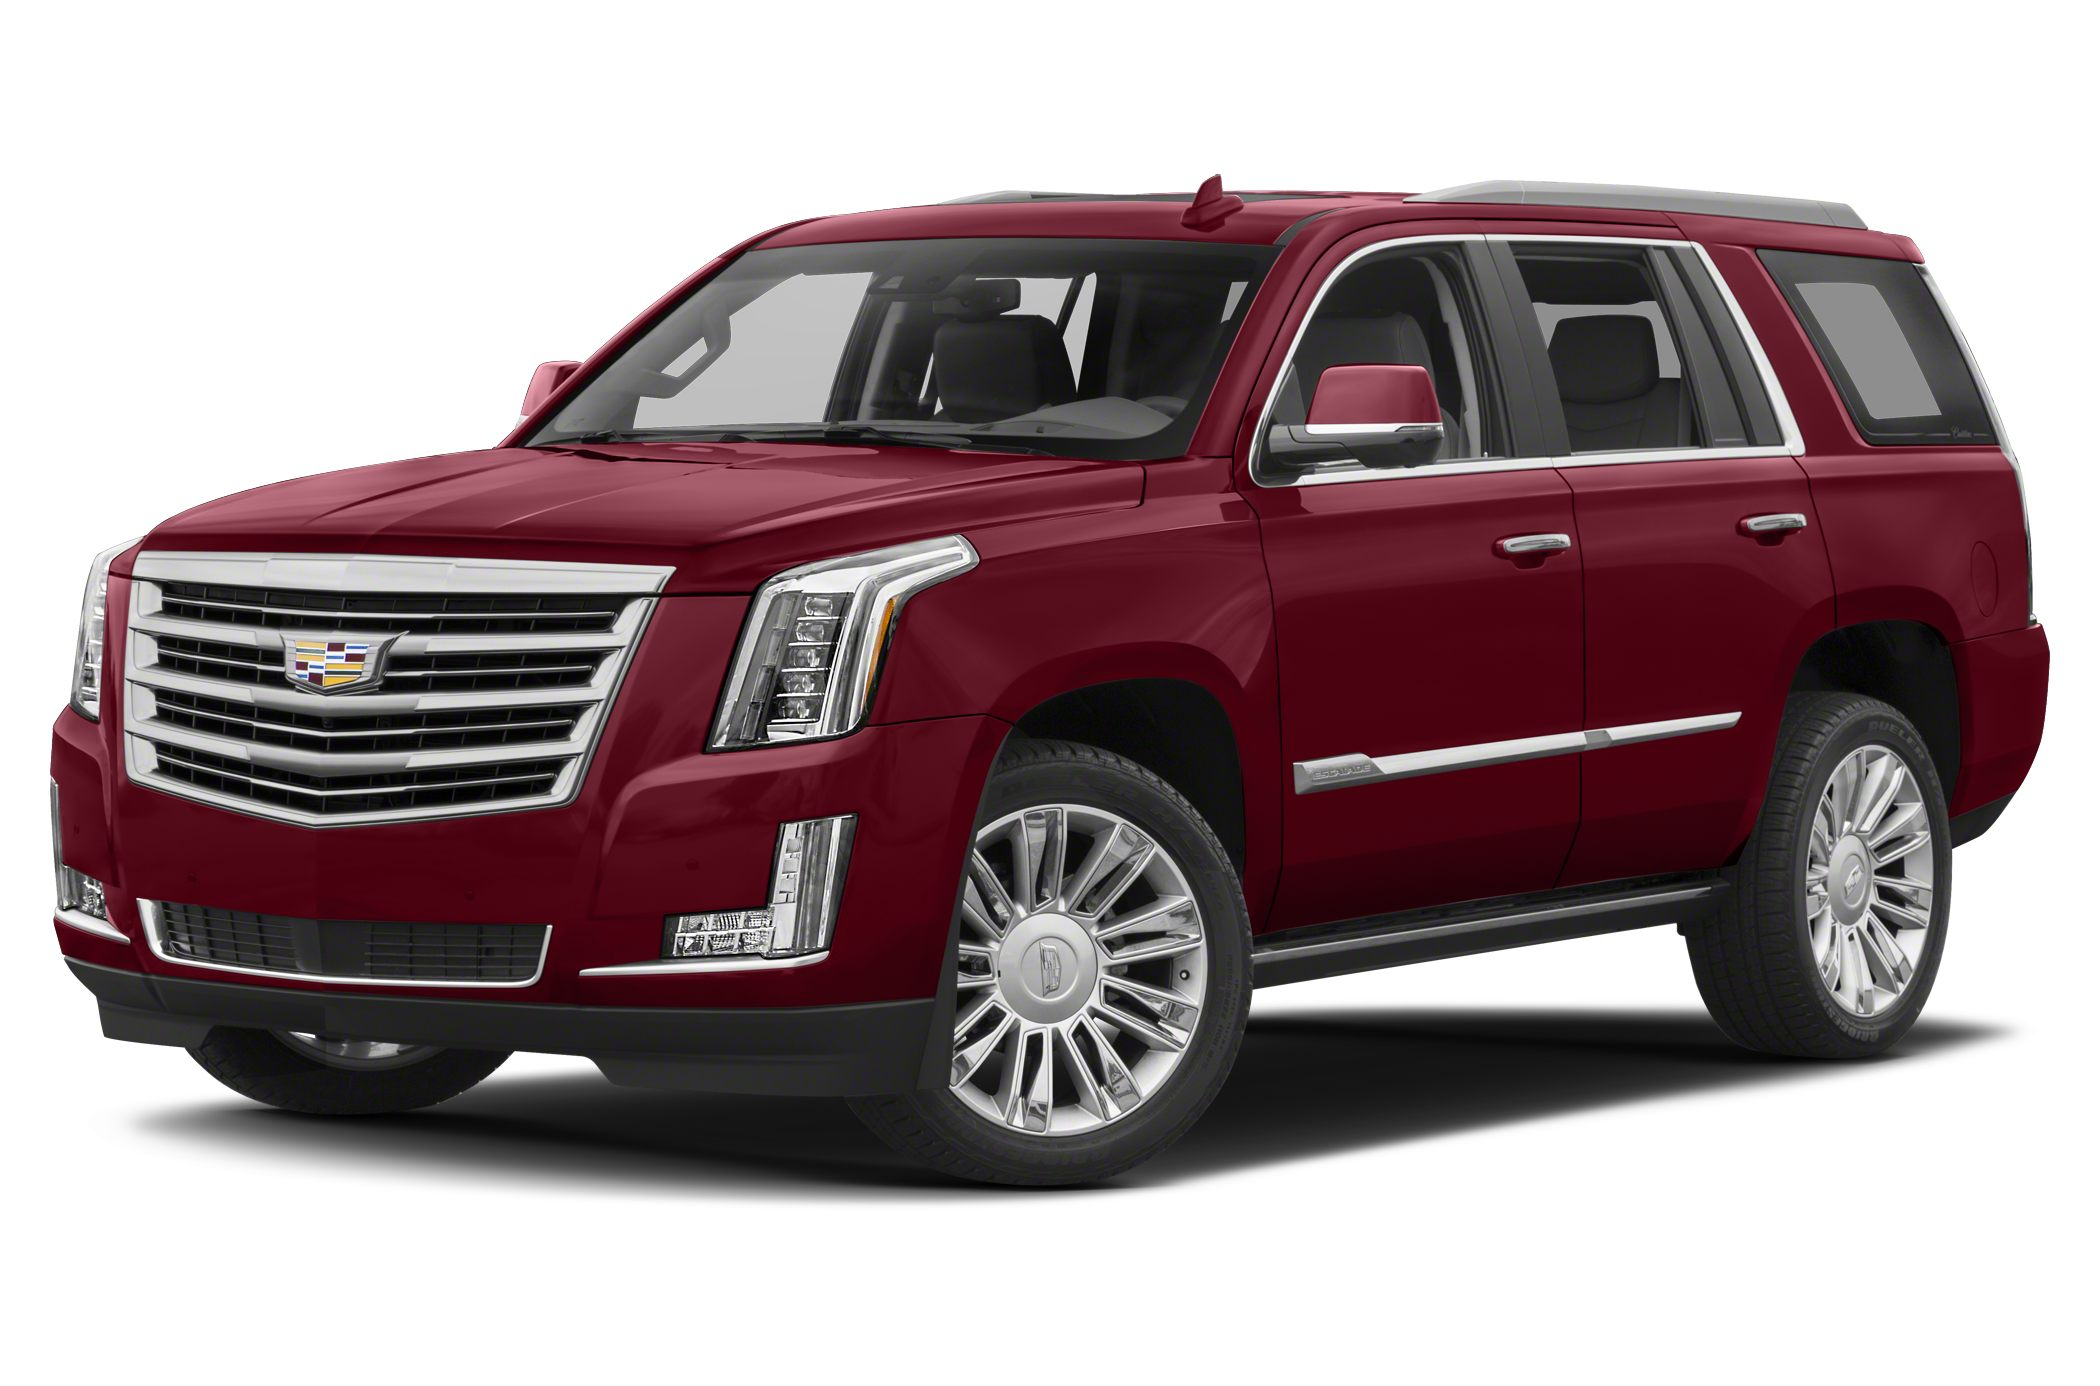 Cadillac Escalade Sport Utility Models Price Specs